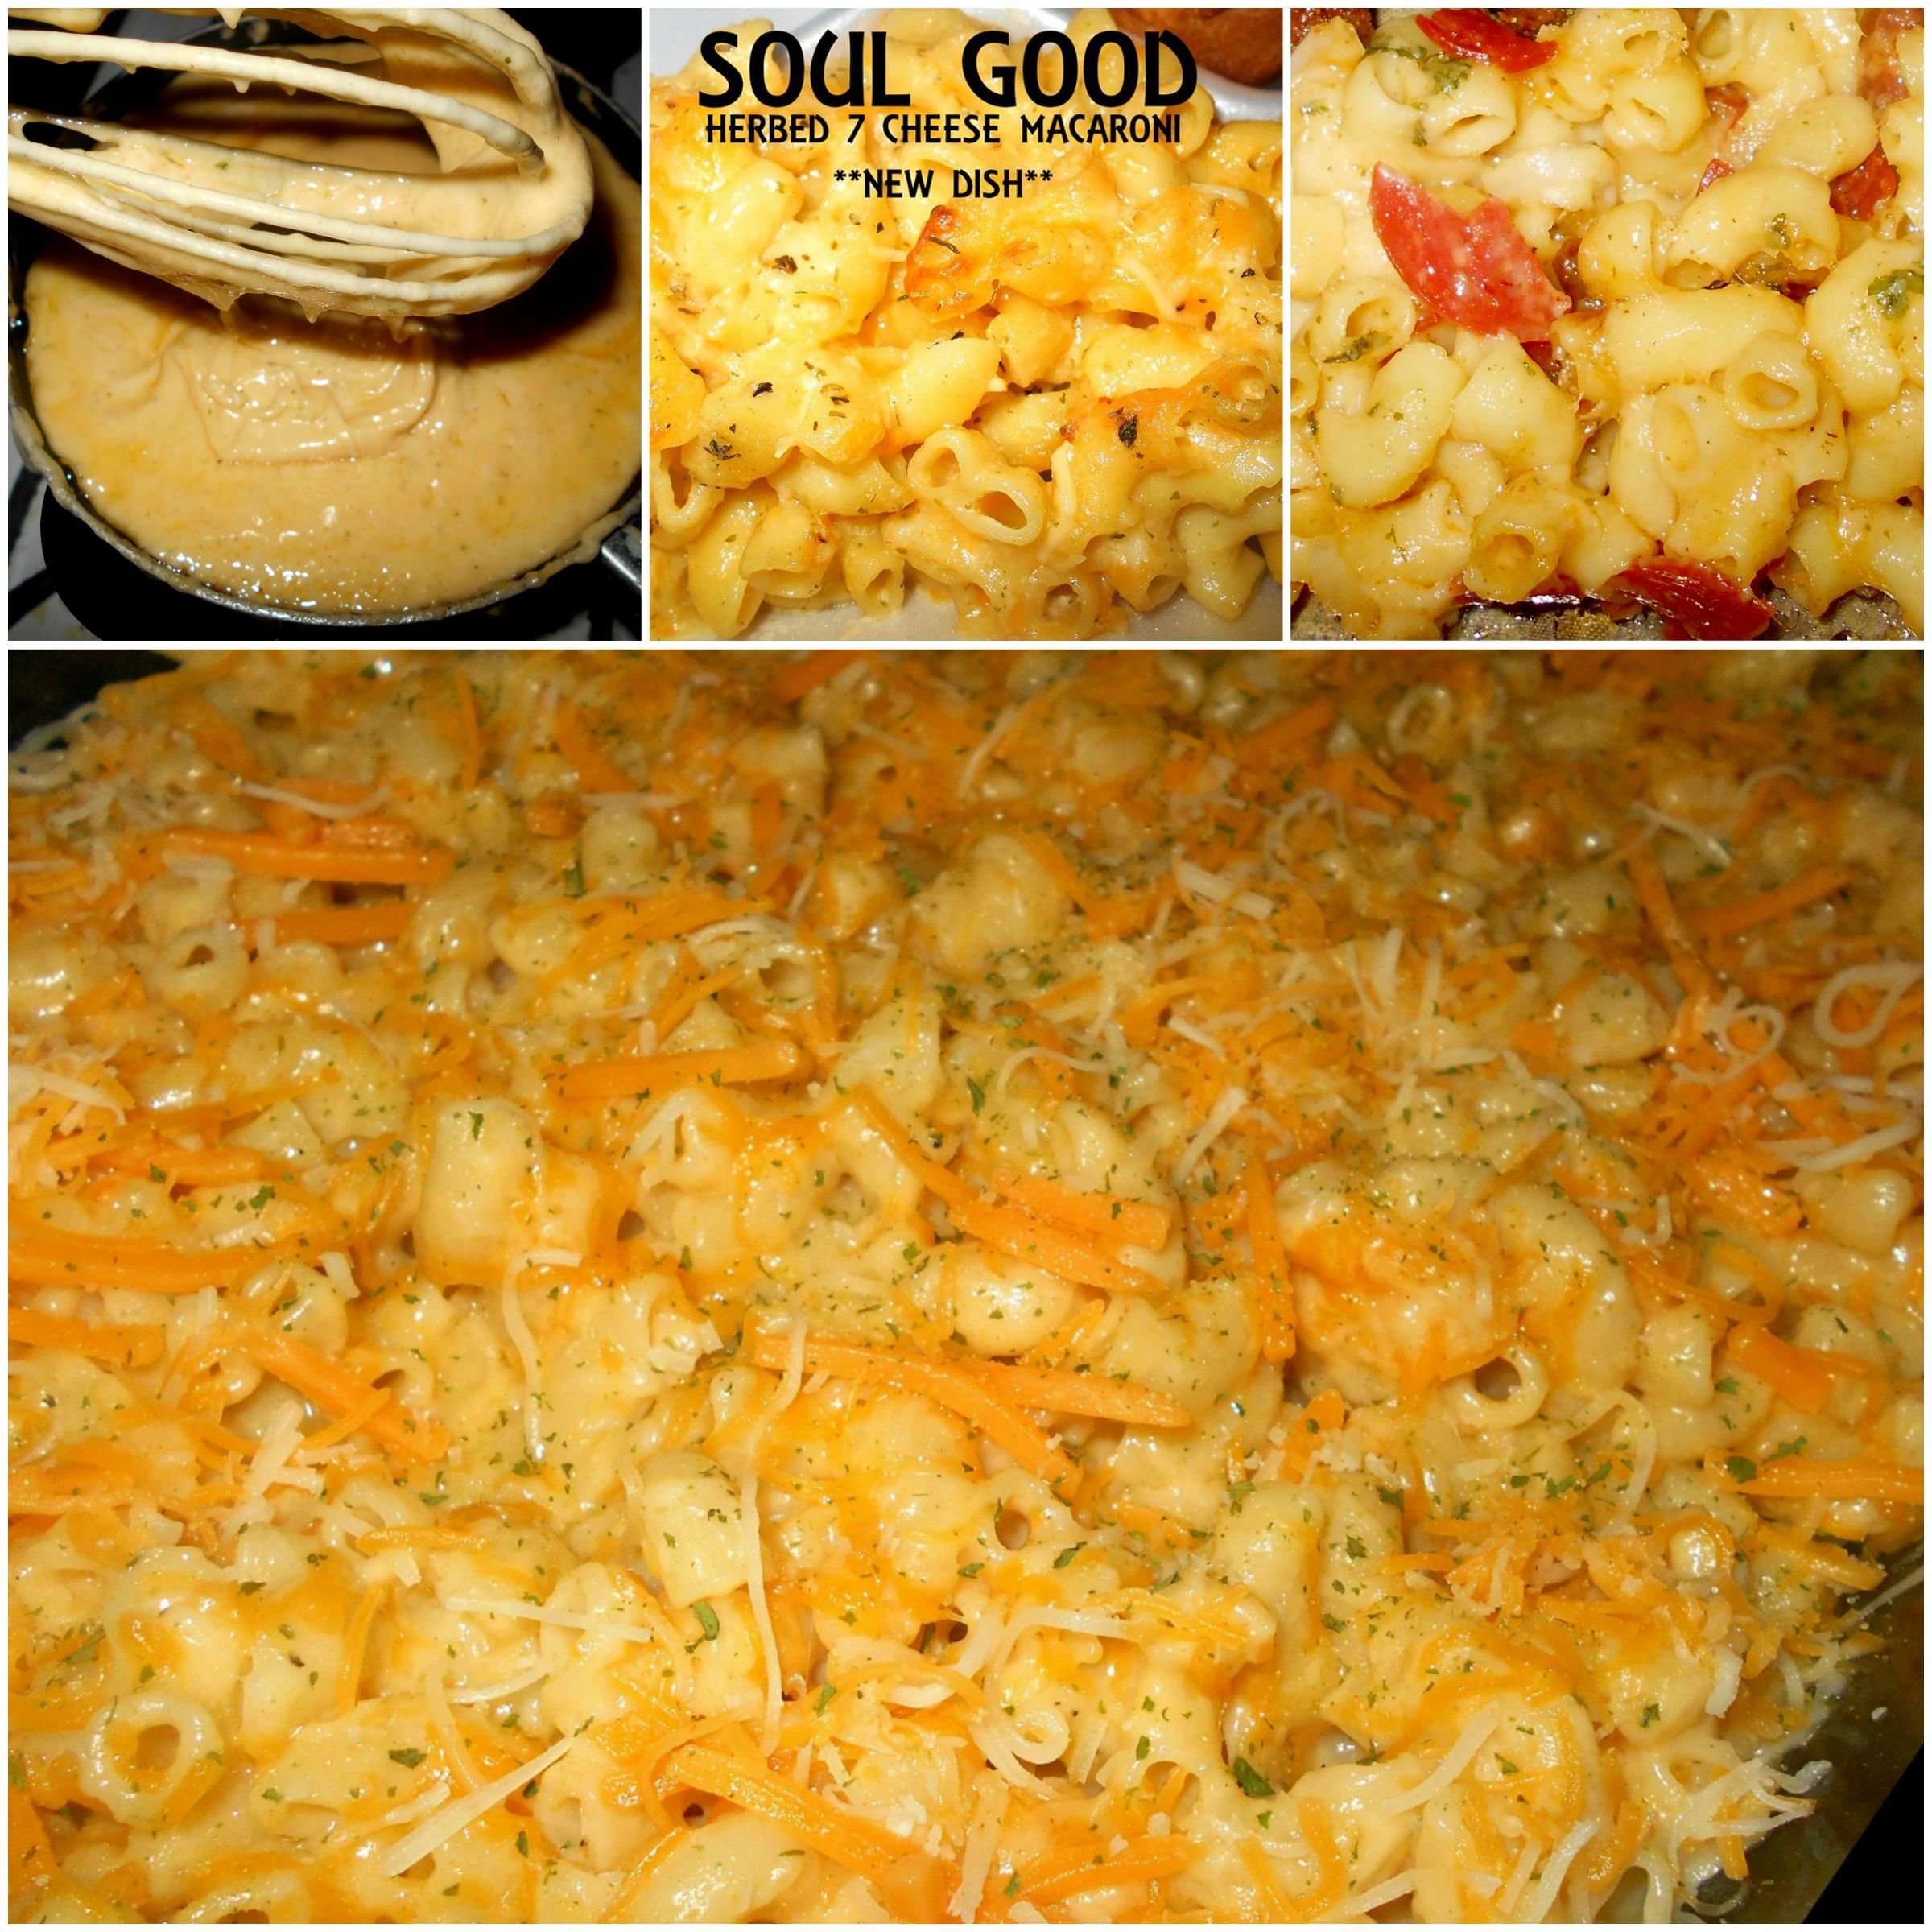 My 8 Cheese Mac Unbelievably Good Macaroni Cheese Healthy Comfort Food Recipes